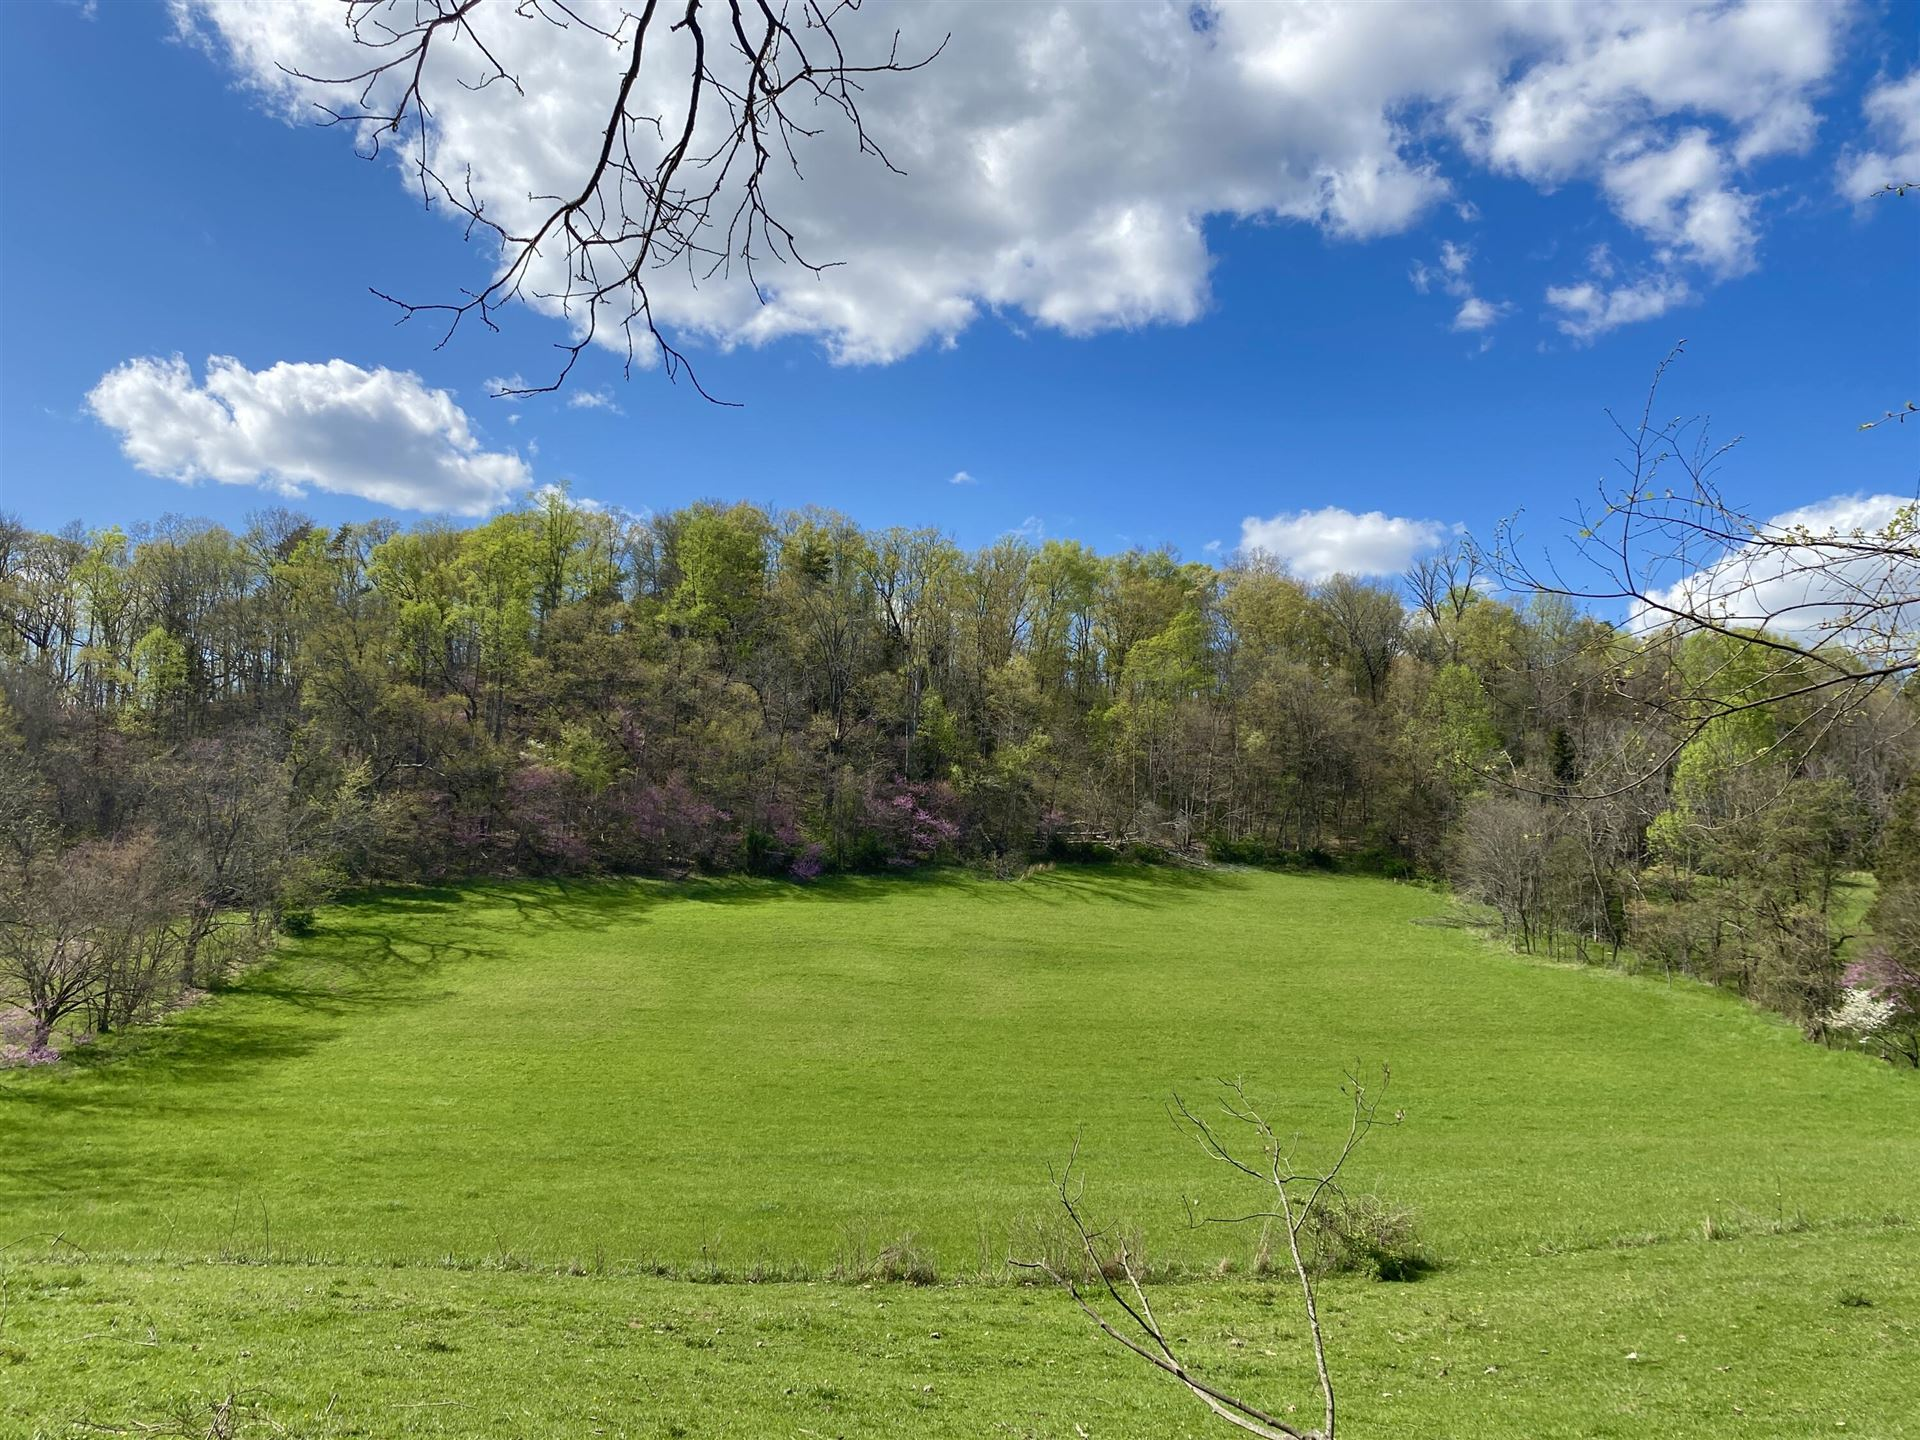 Photo of Tbd Glover Gibson Road, Fall Branch, TN 37656 (MLS # 9926468)